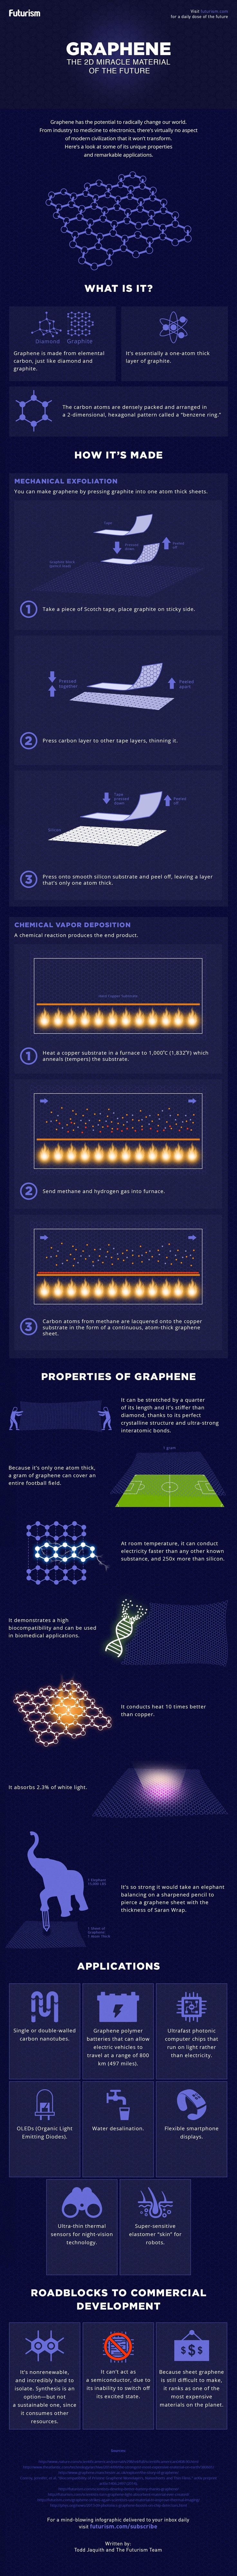 Graphene could lead to major advancements in electric car batteries, robotic skin, and even water desalination. But what is it, and why hasn't it changed the world yet?